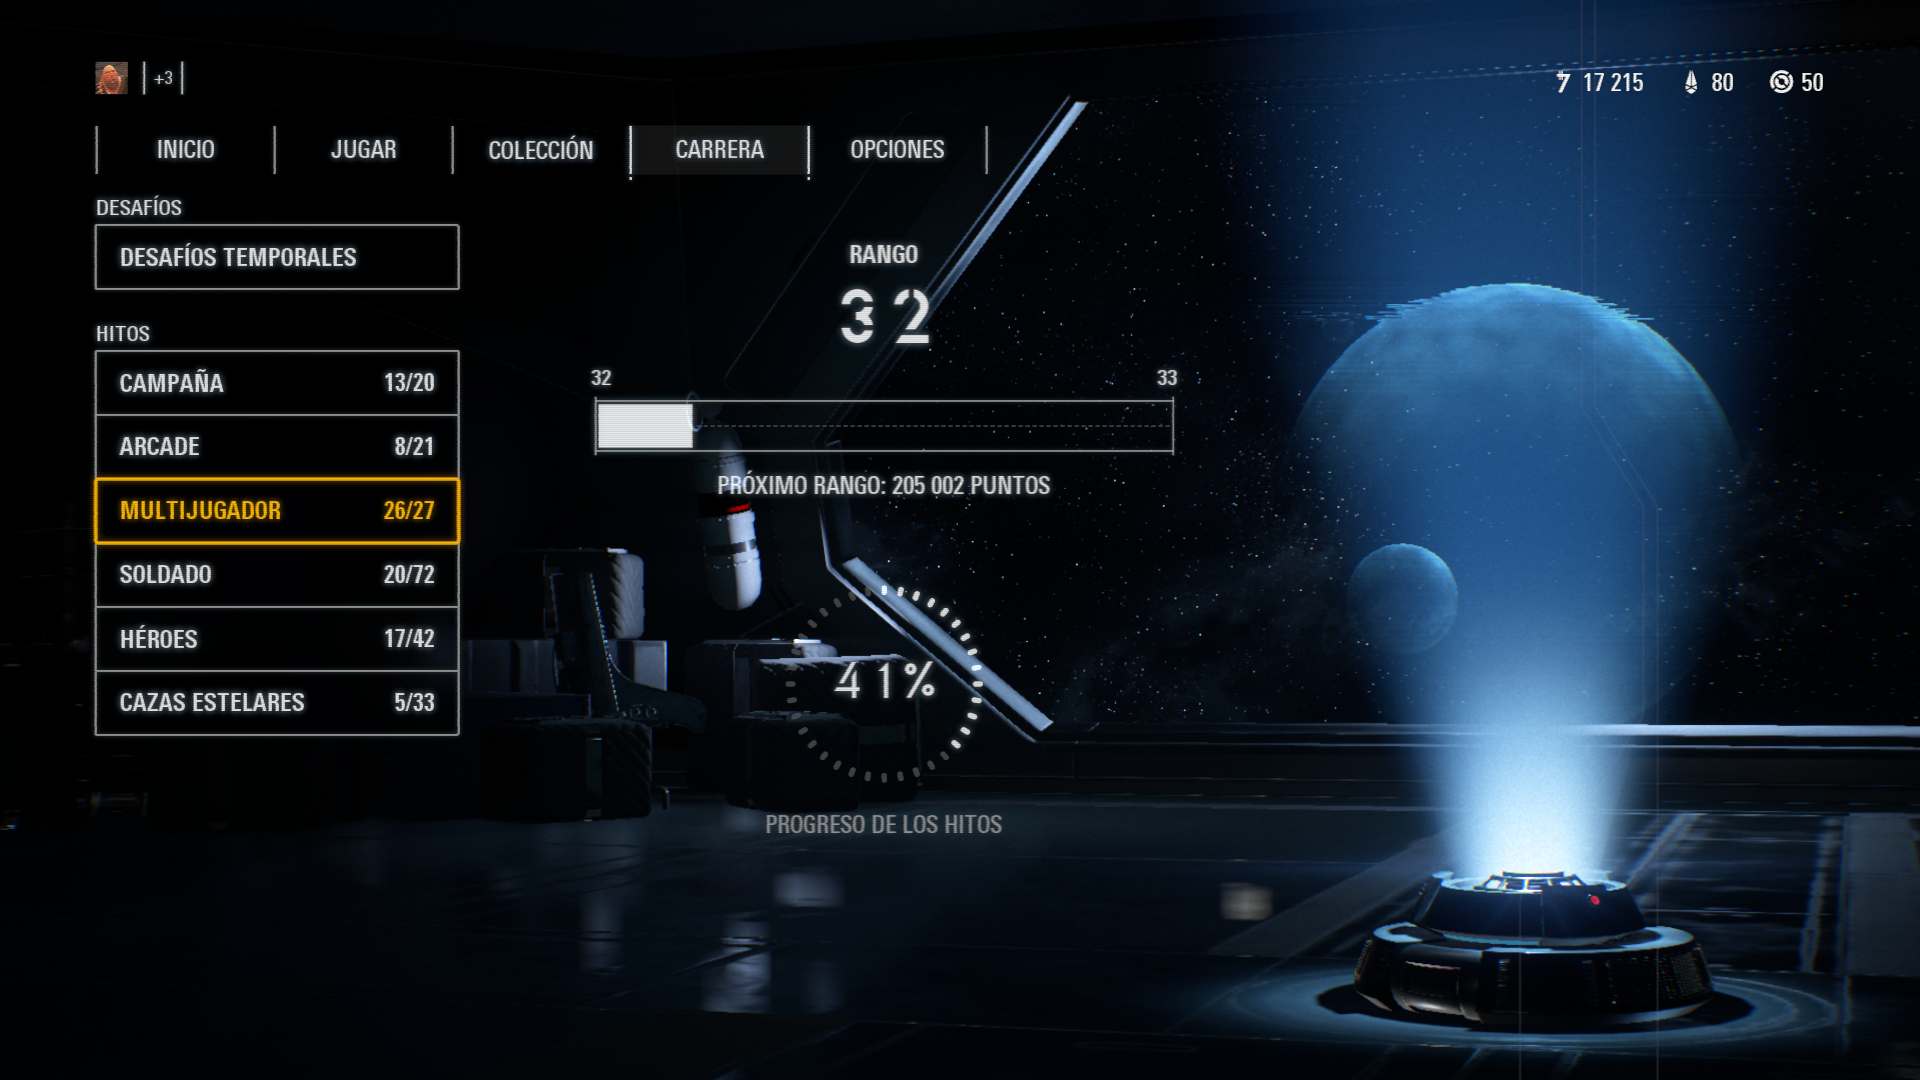 Star Wars  Battlefront II (2017) Screenshot 2017.12.02 - 00.20.11.44.png